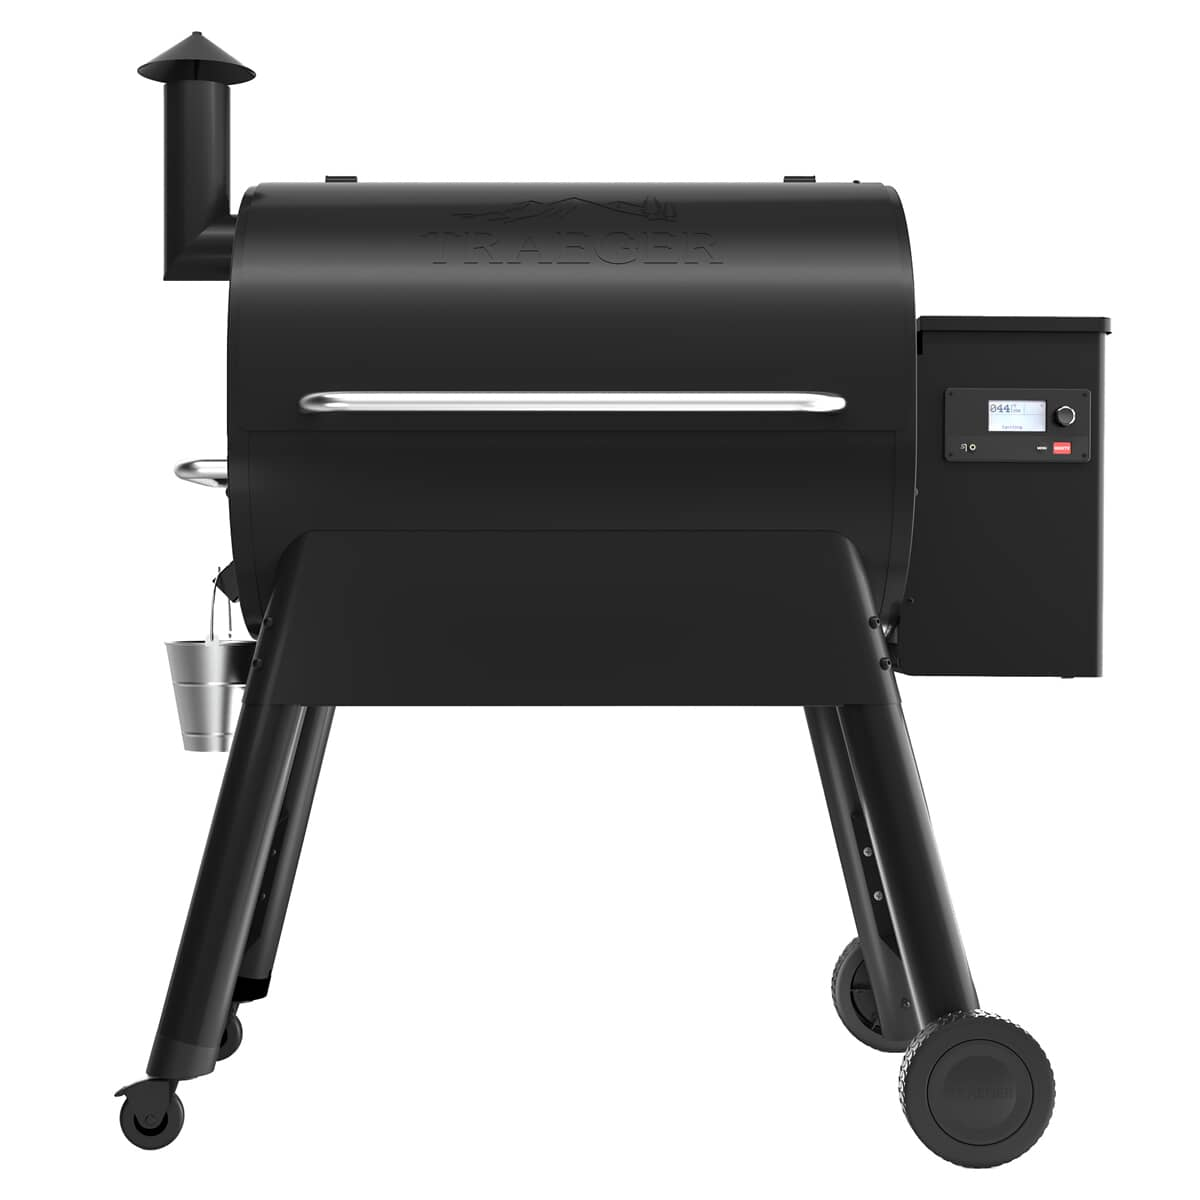 Traeger Grills Pro D2 780 with WiFire Controller